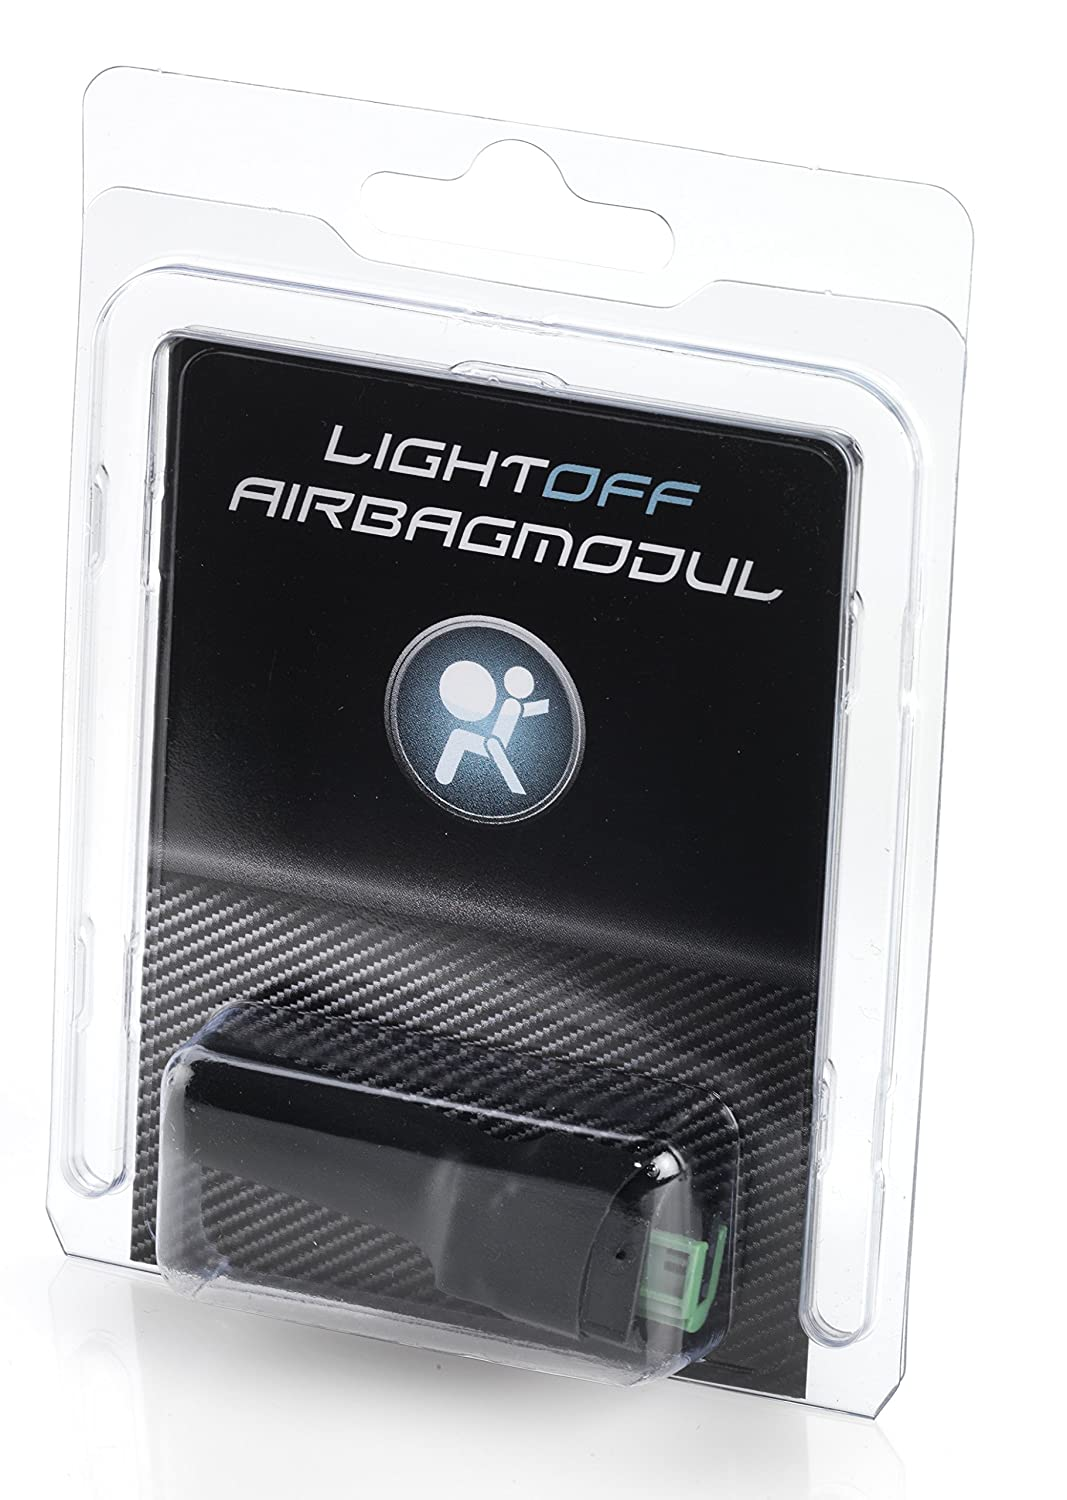 LightOff-Airbagmodul 2 Seat Occupancy Seat Sensor Mats LA-001